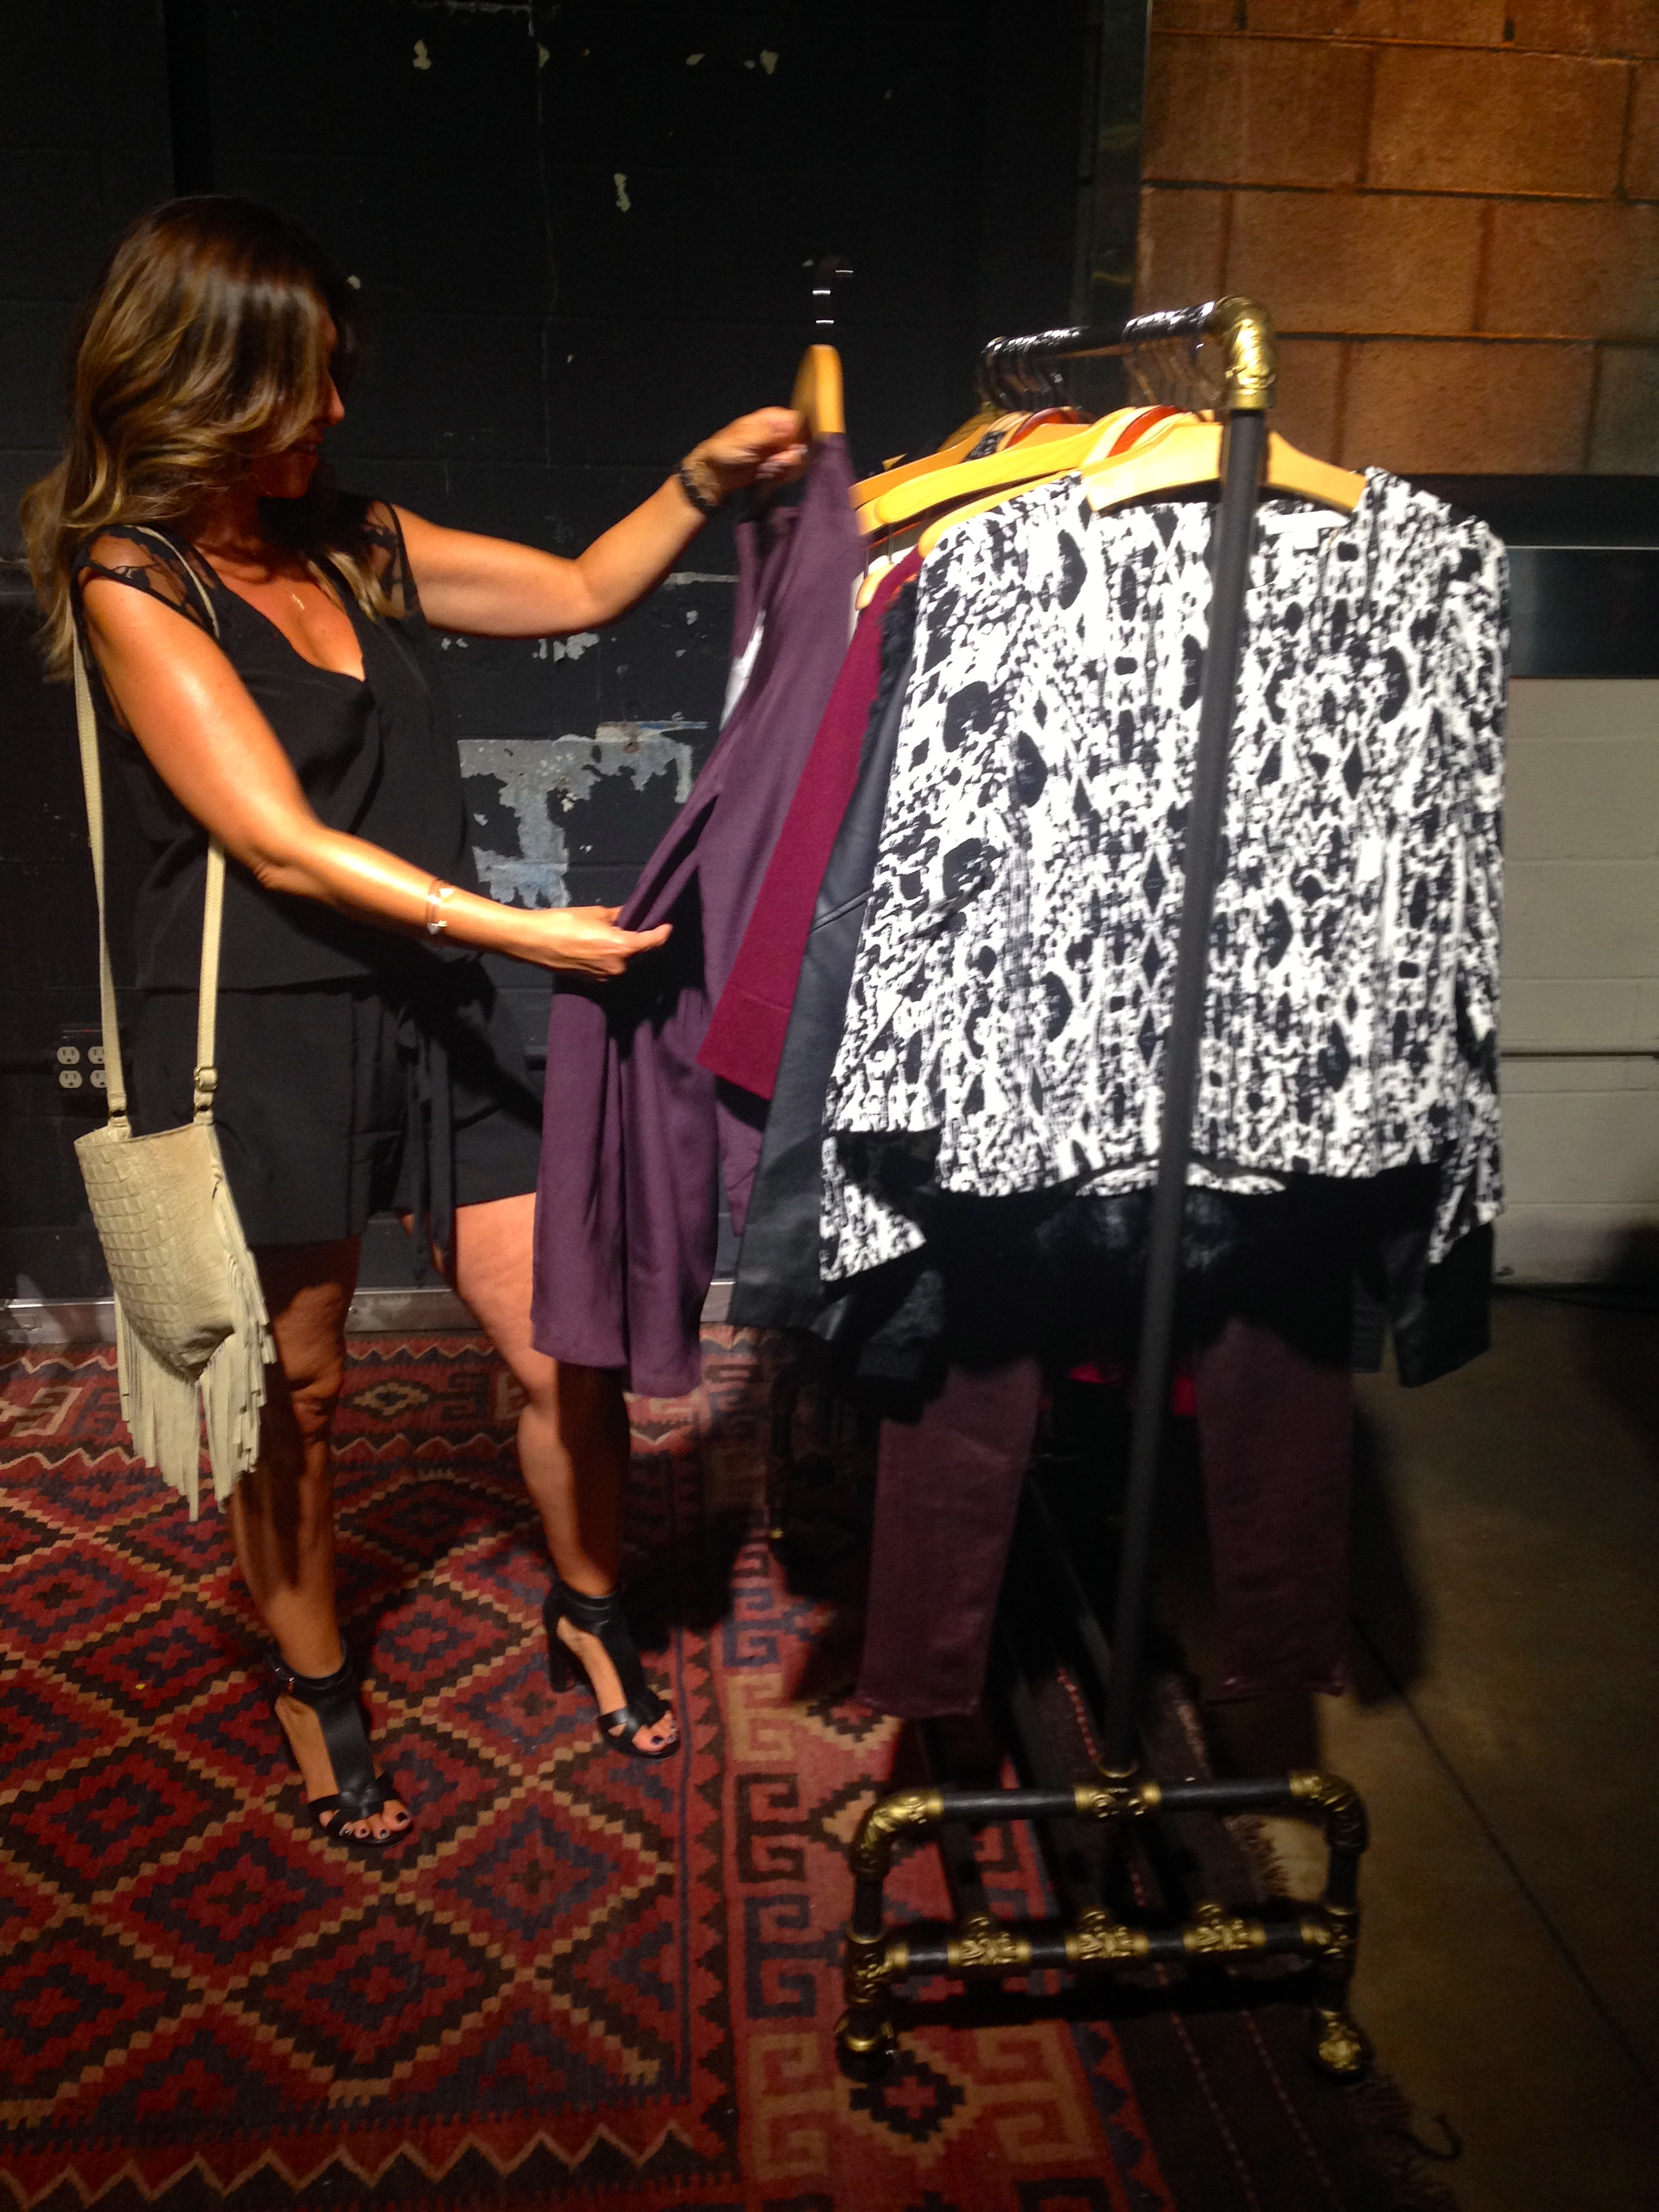 Checking out  Piperlime's  new line at the launch event. I found the new collection to be diverse and on-trend!